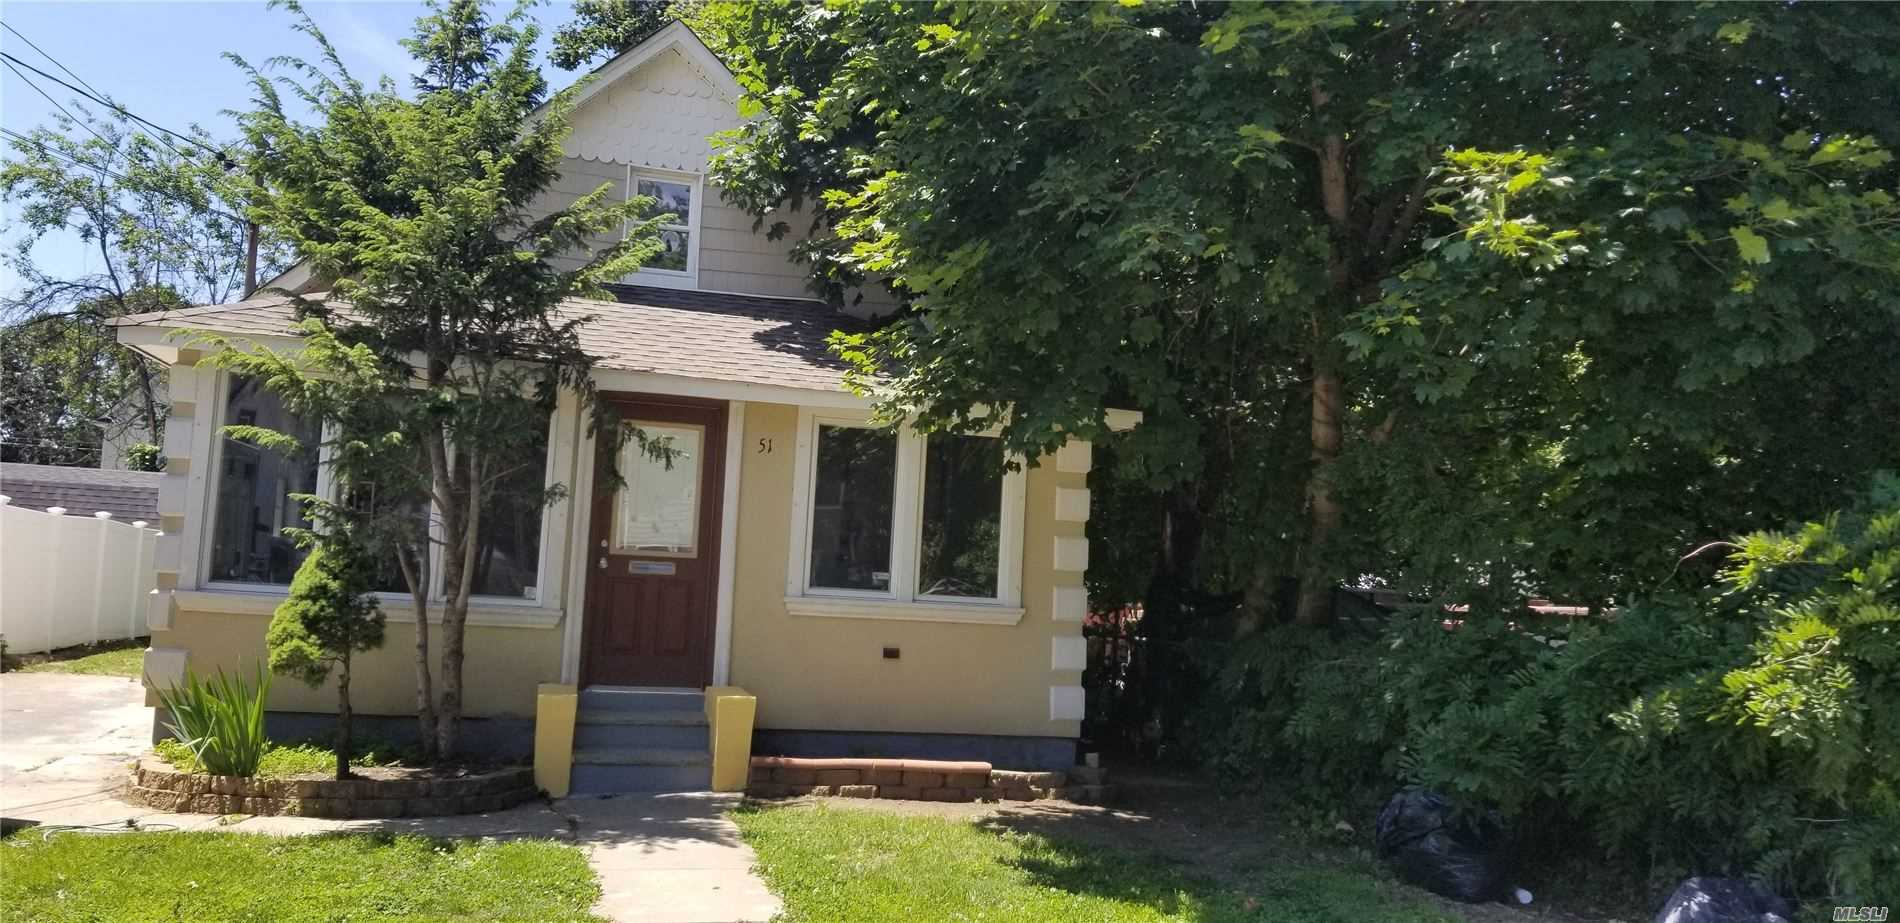 Photo of home for sale at 51 Prospect St, Roosevelt NY